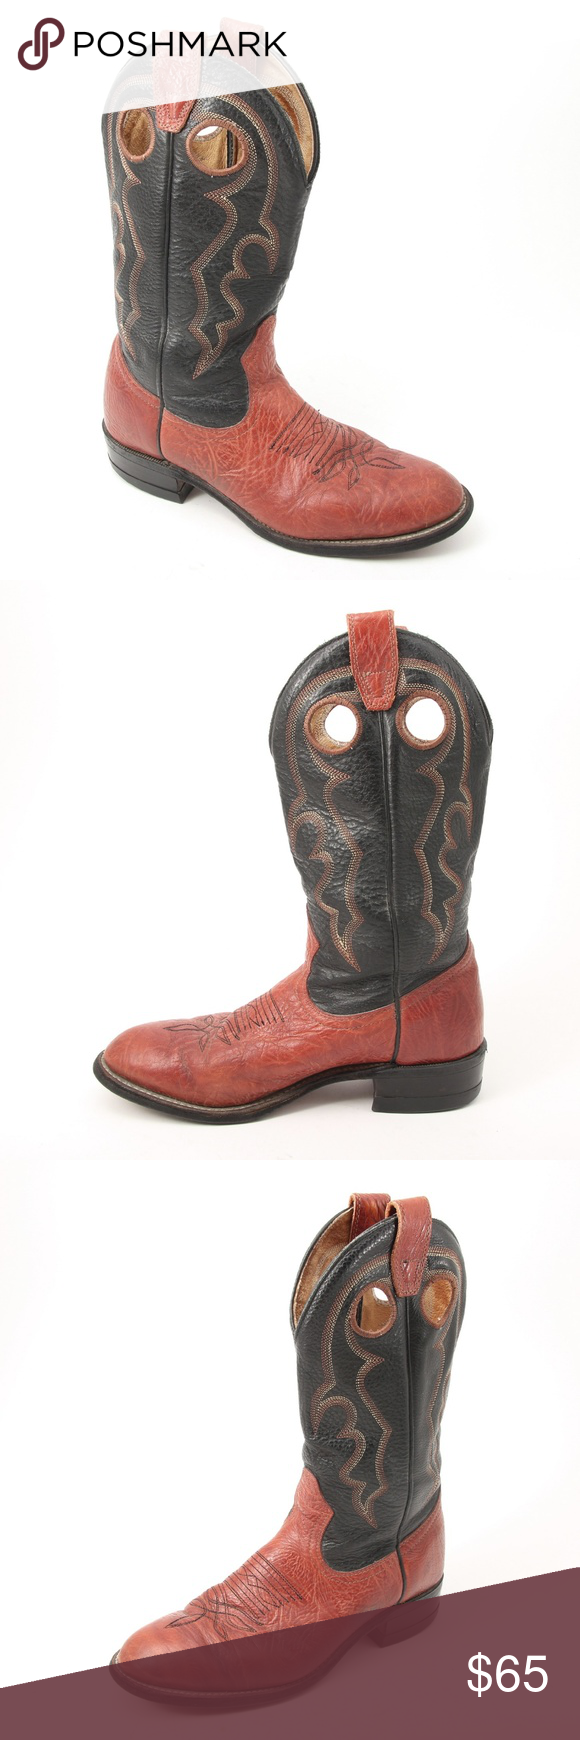 Boulet Leather Cowboy Western Boots Women's Size 7 These leather Boulet boots ar…